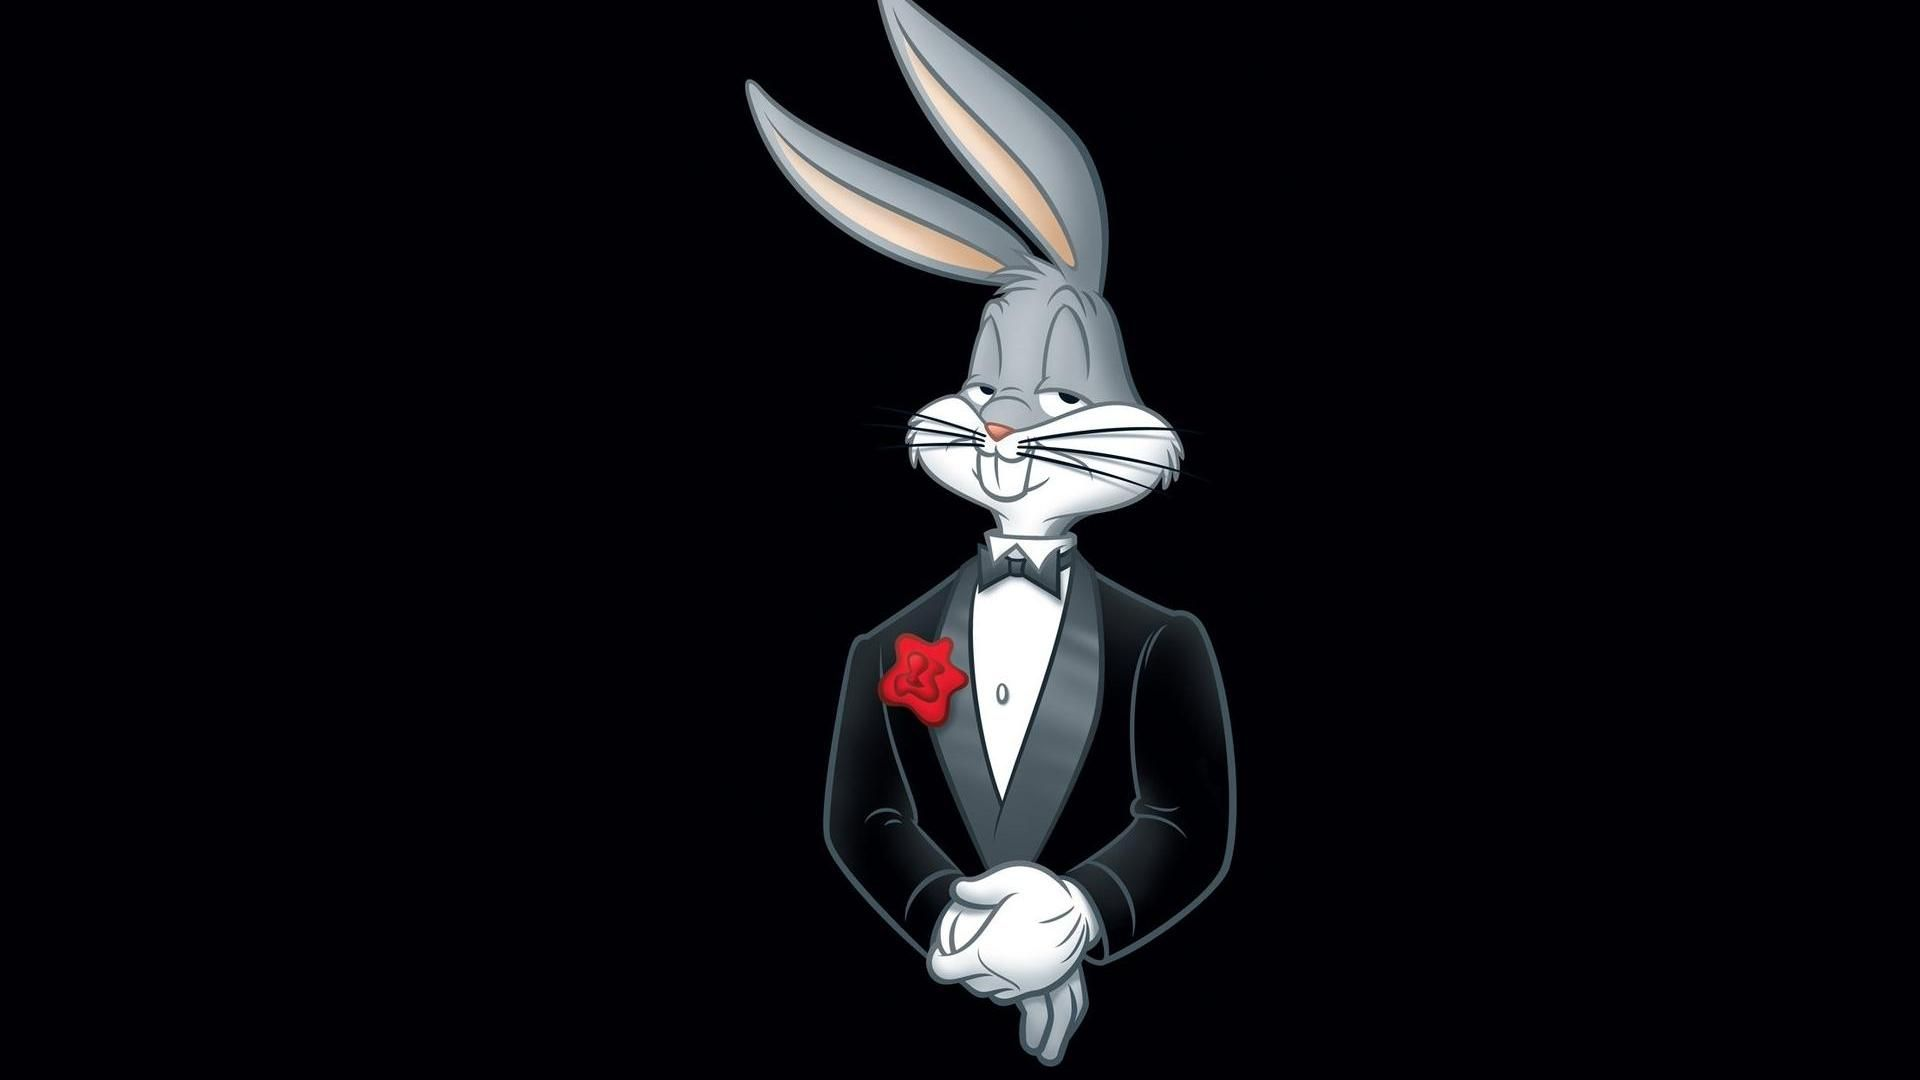 Bugs Bunny Hd Images